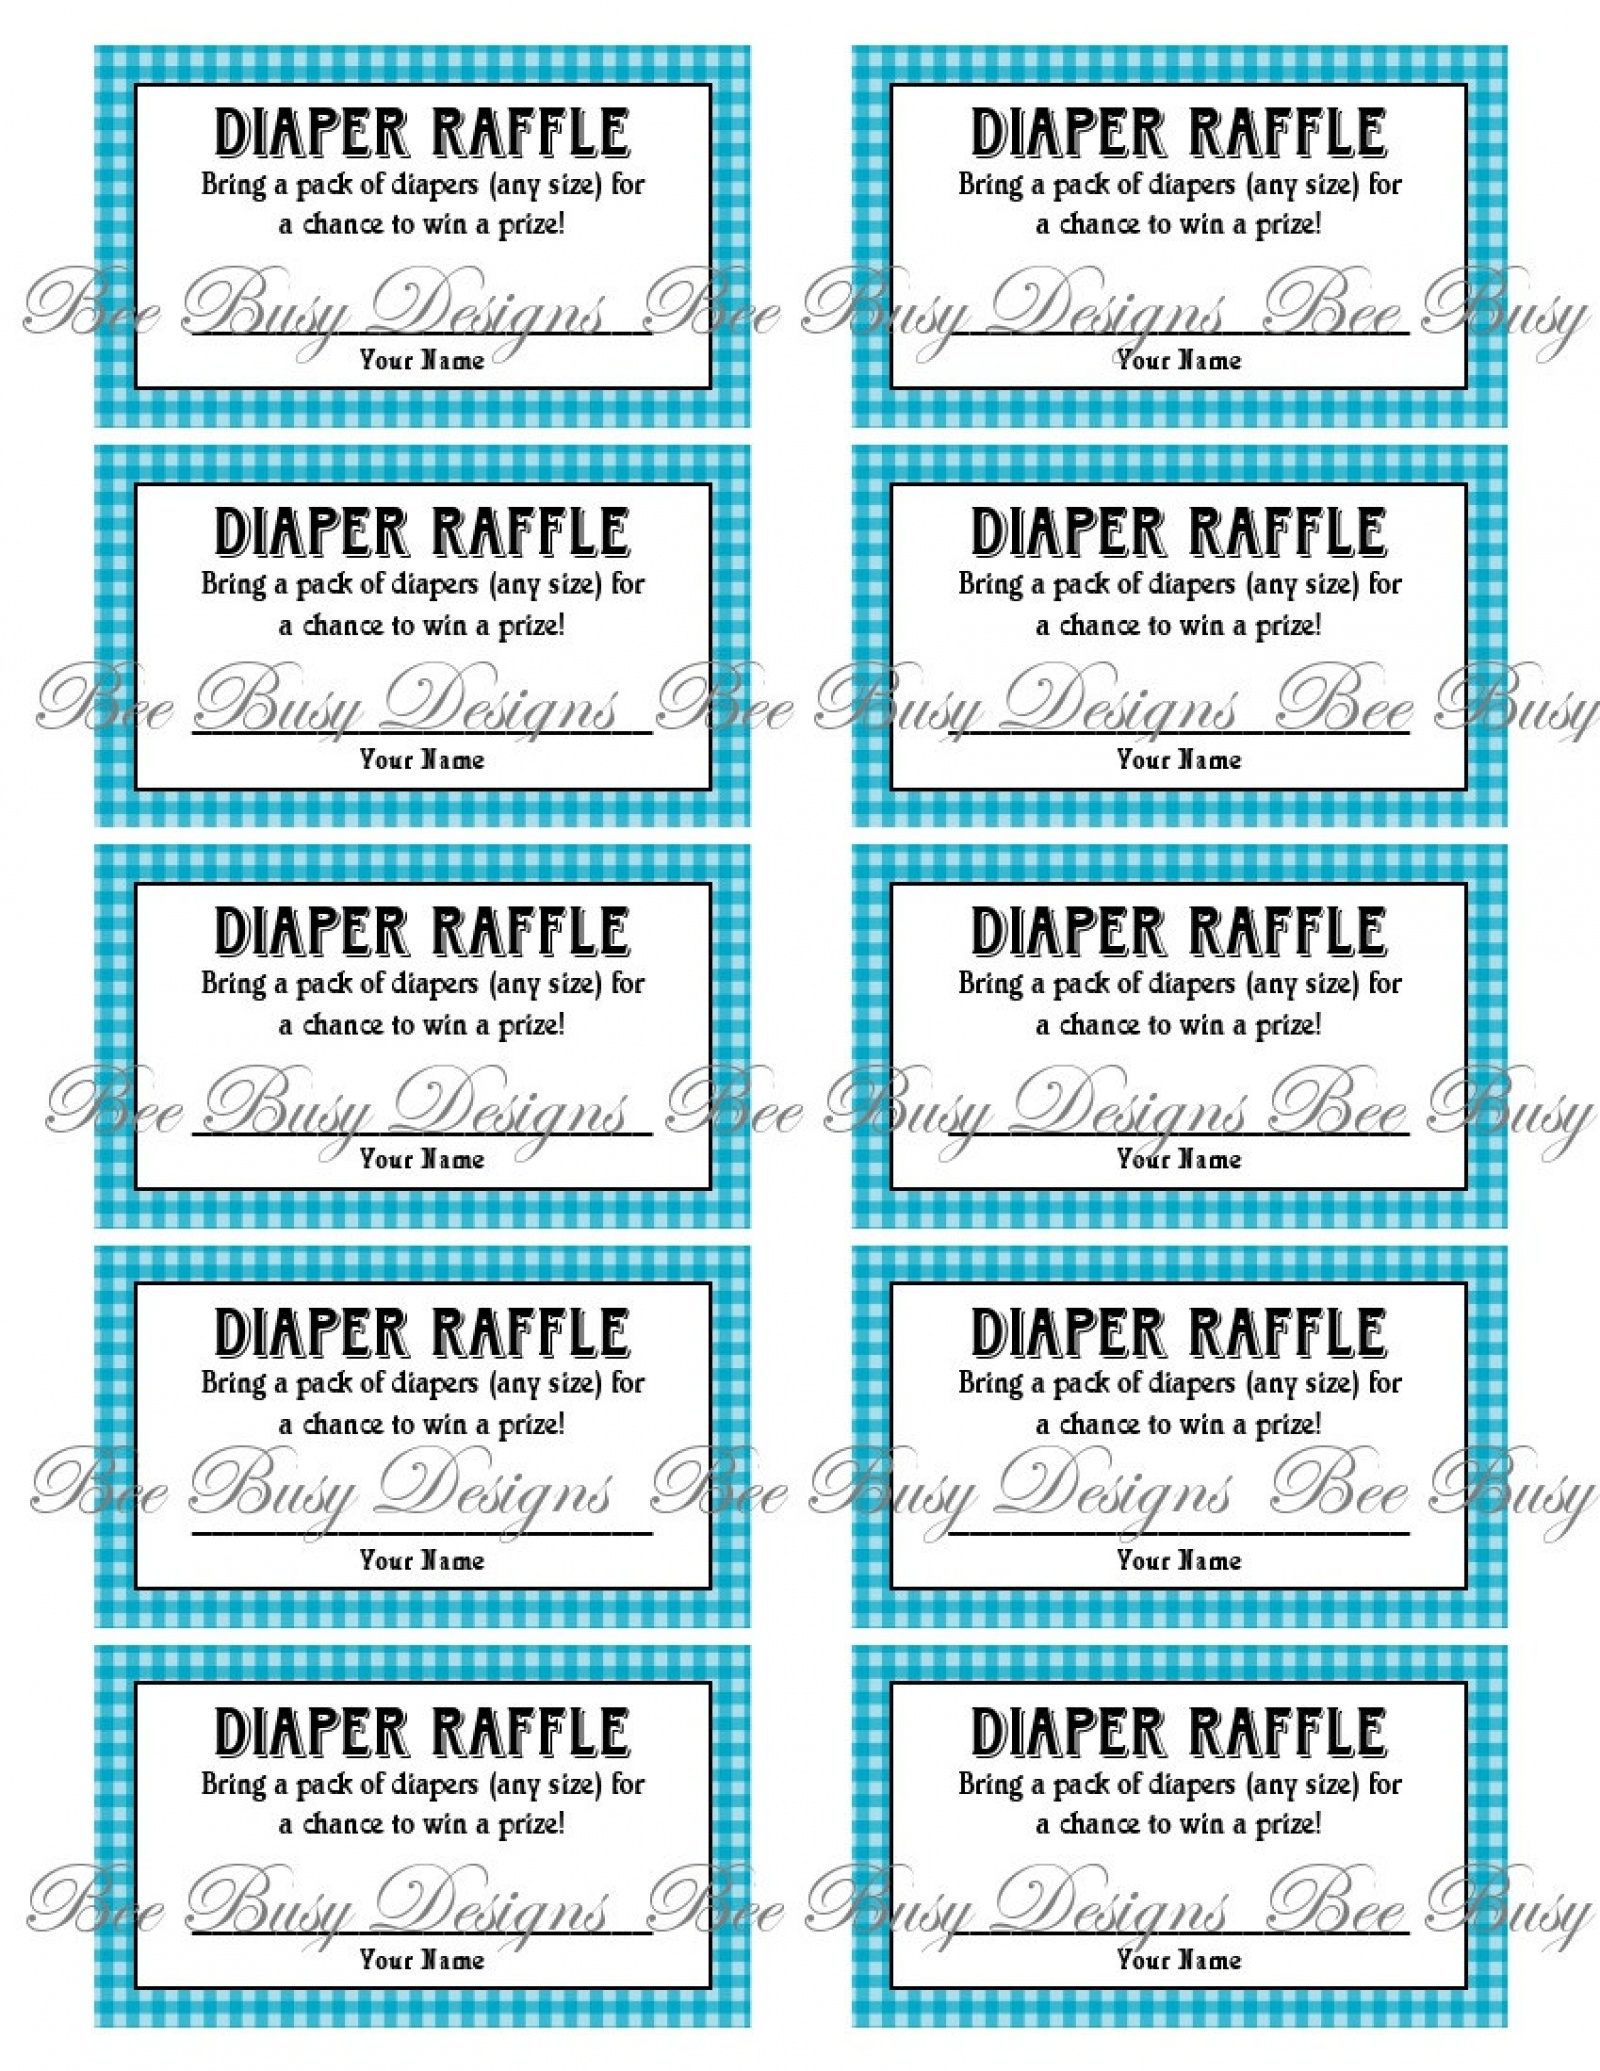 Diaper Raffle Tickets Printable - Tutlin.psstech.co - Free Printable Baby Shower Diaper Raffle Tickets